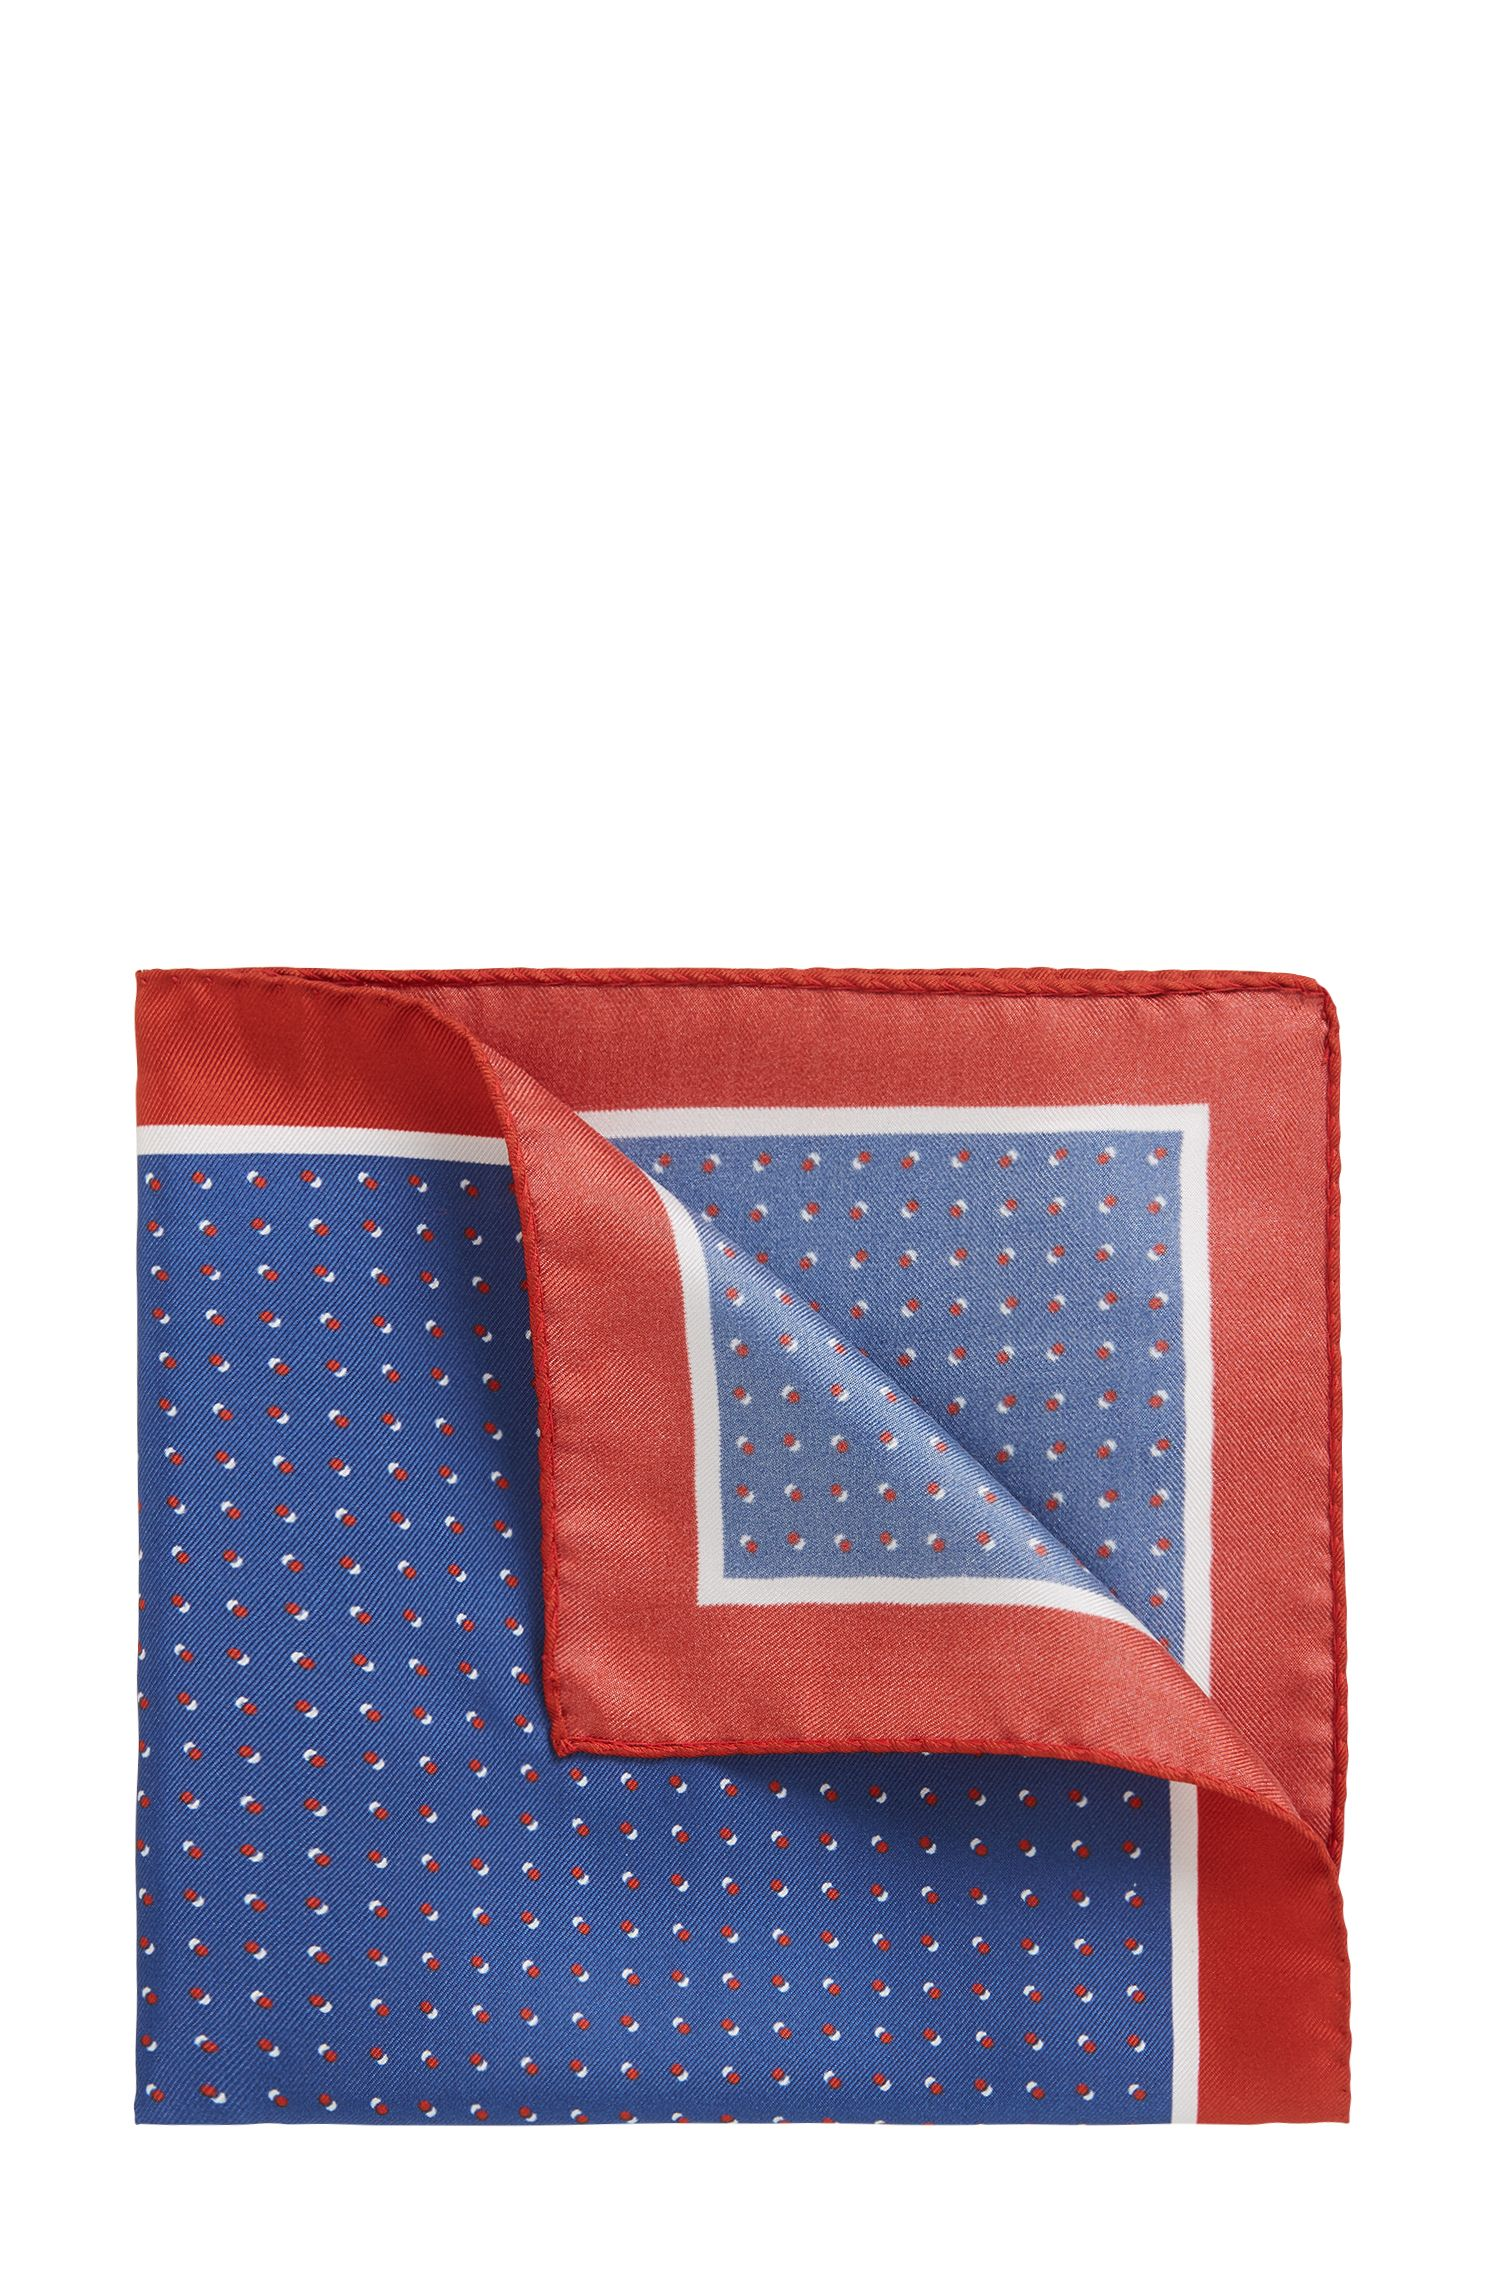 Italian-made silk pocket square with printed motif